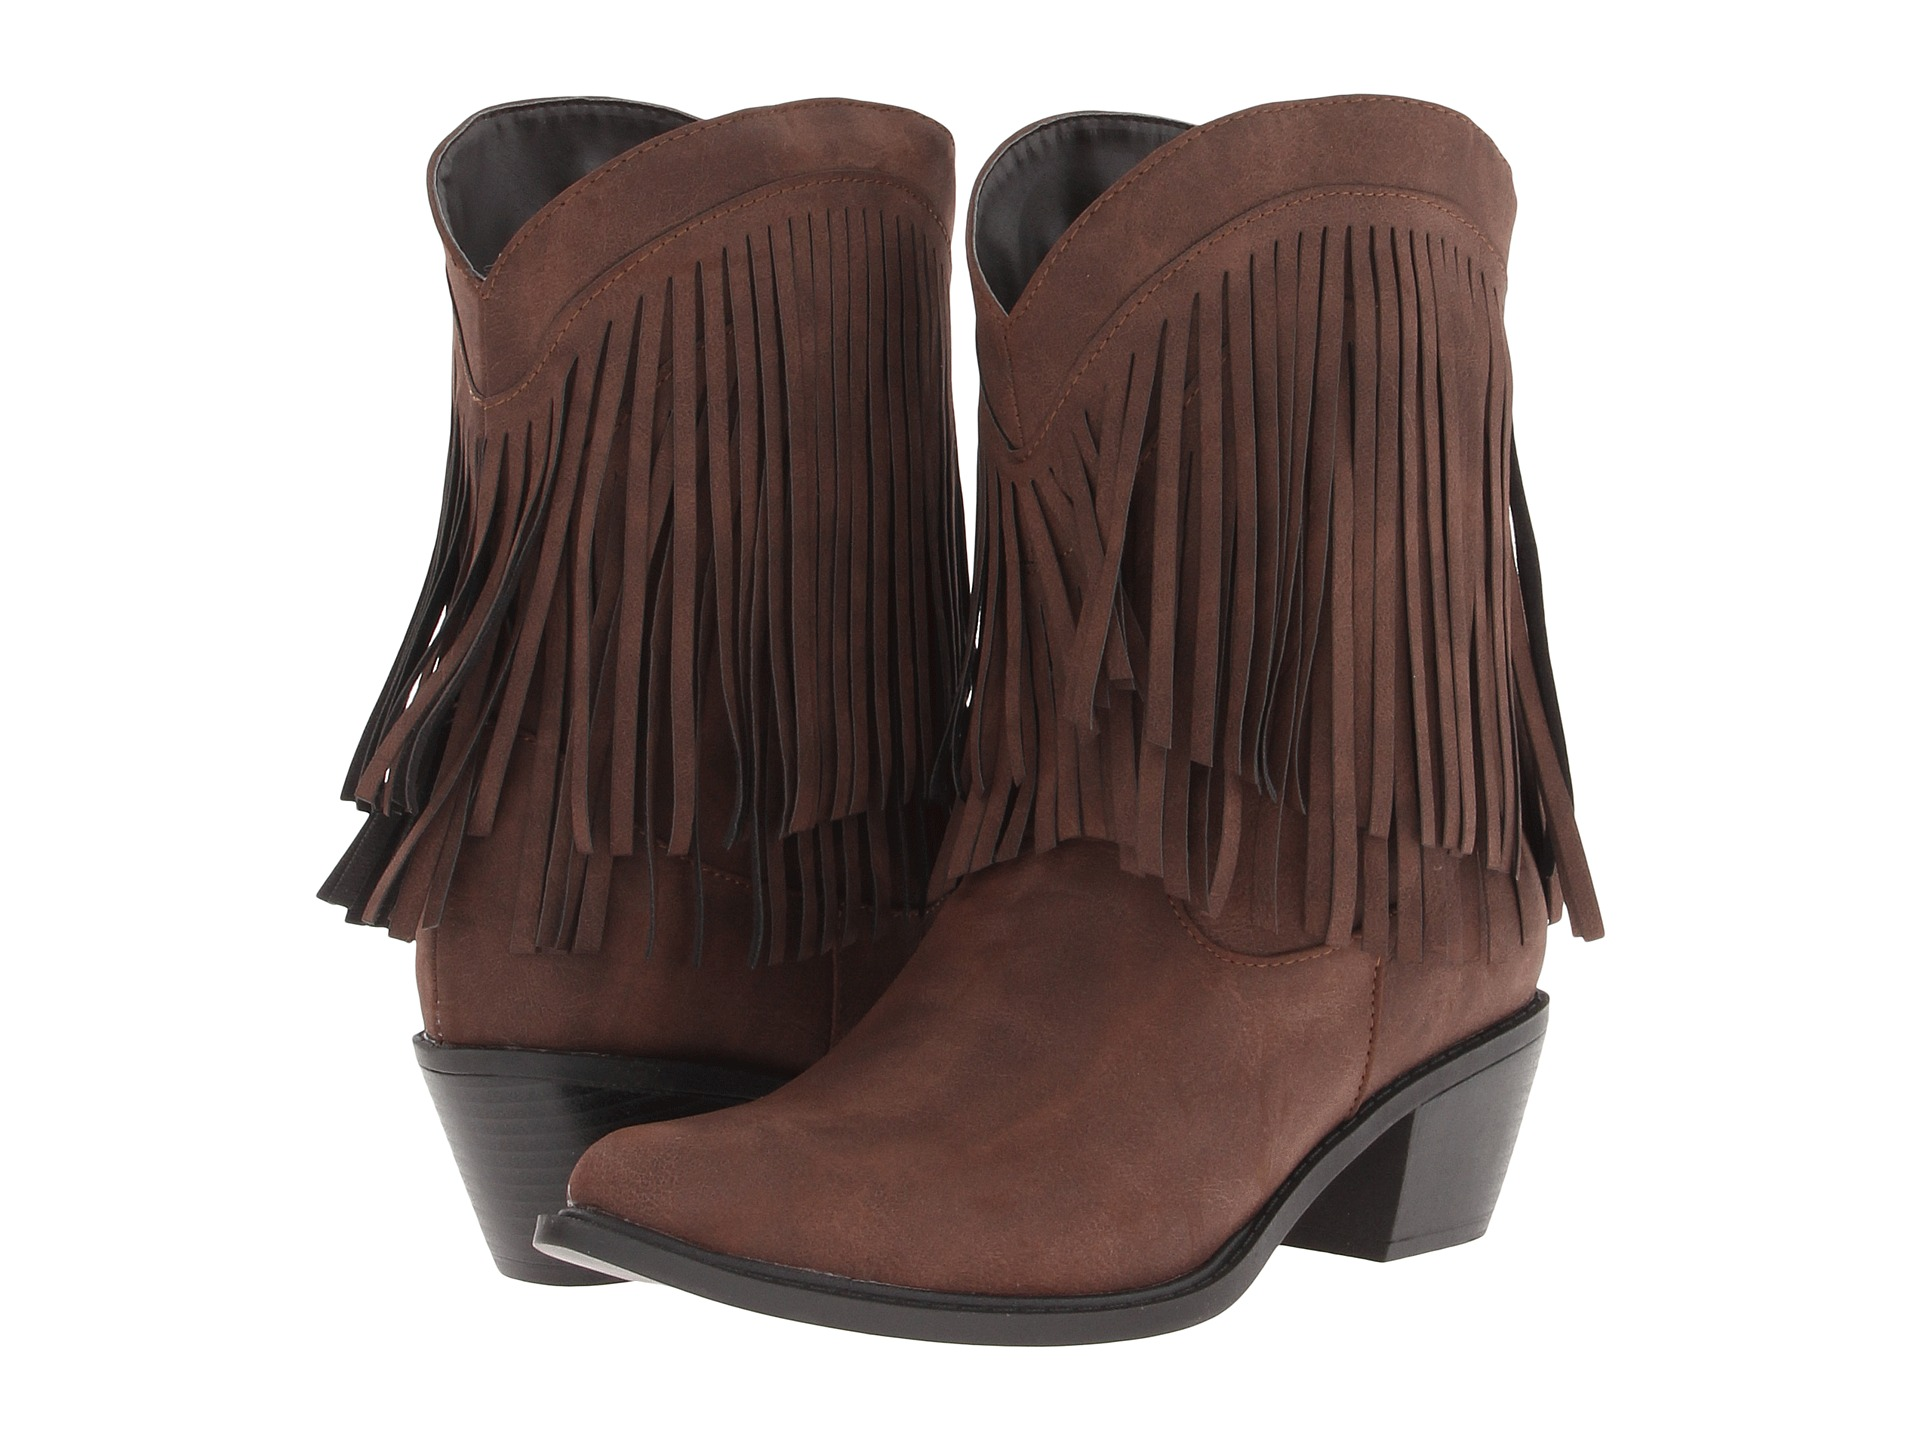 Red Suede Fringe Boots ($ - $): 30 of items - Shop Red Suede Fringe Boots from ALL your favorite stores & find HUGE SAVINGS up to 80% off Red Suede Fringe Boots, including GREAT DEALS like Red Suede Fringe Boots | Color: Red | Size: ($).